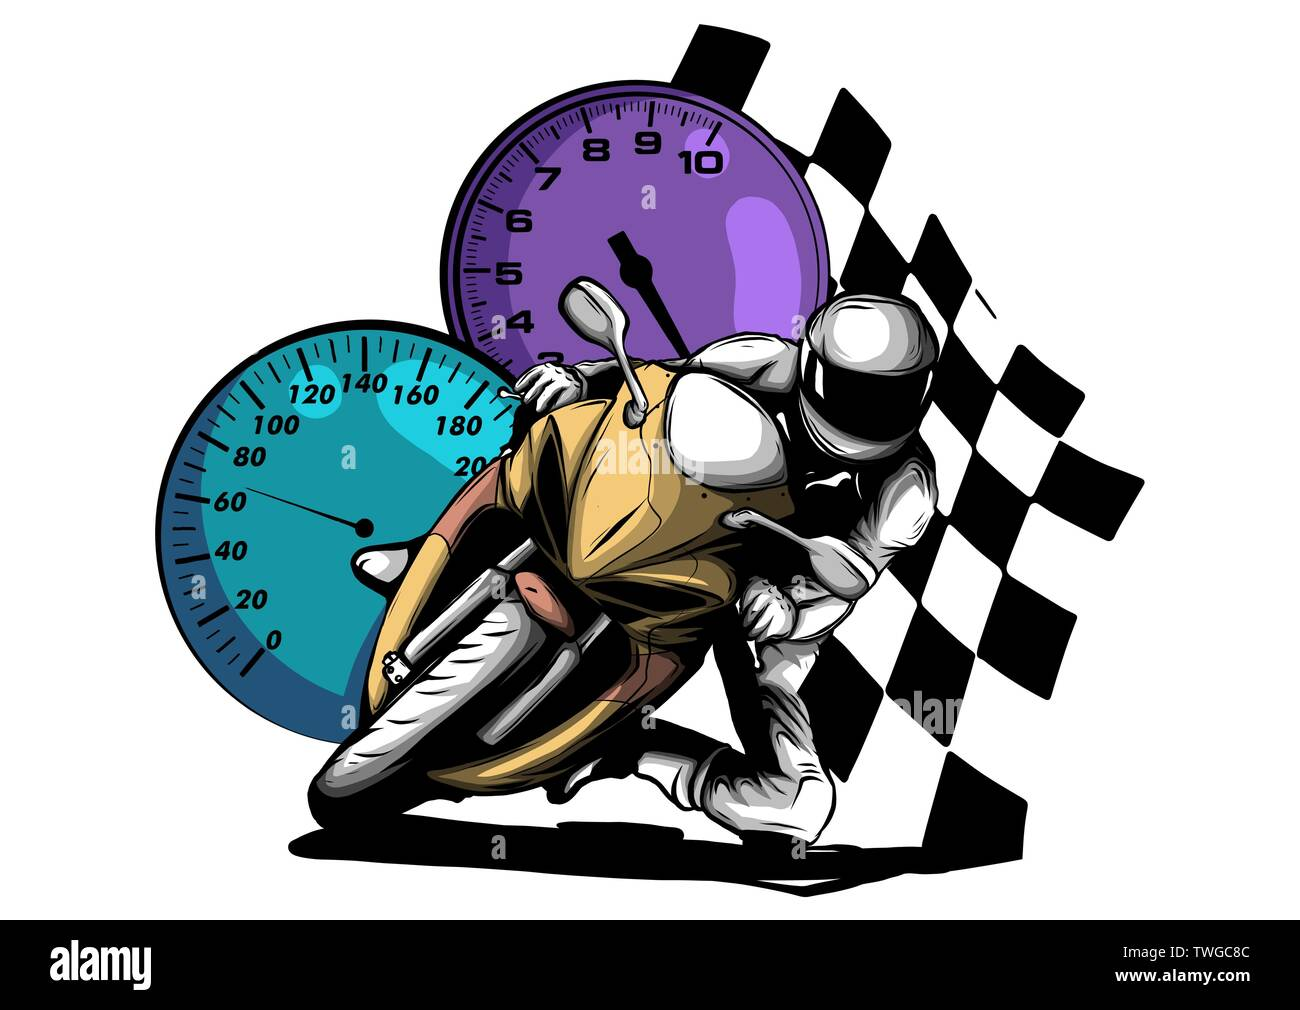 Road Motorcycle Rider Abstract Vector Silhouette Motor Sport Logo Illustration Stock Vector Image Art Alamy